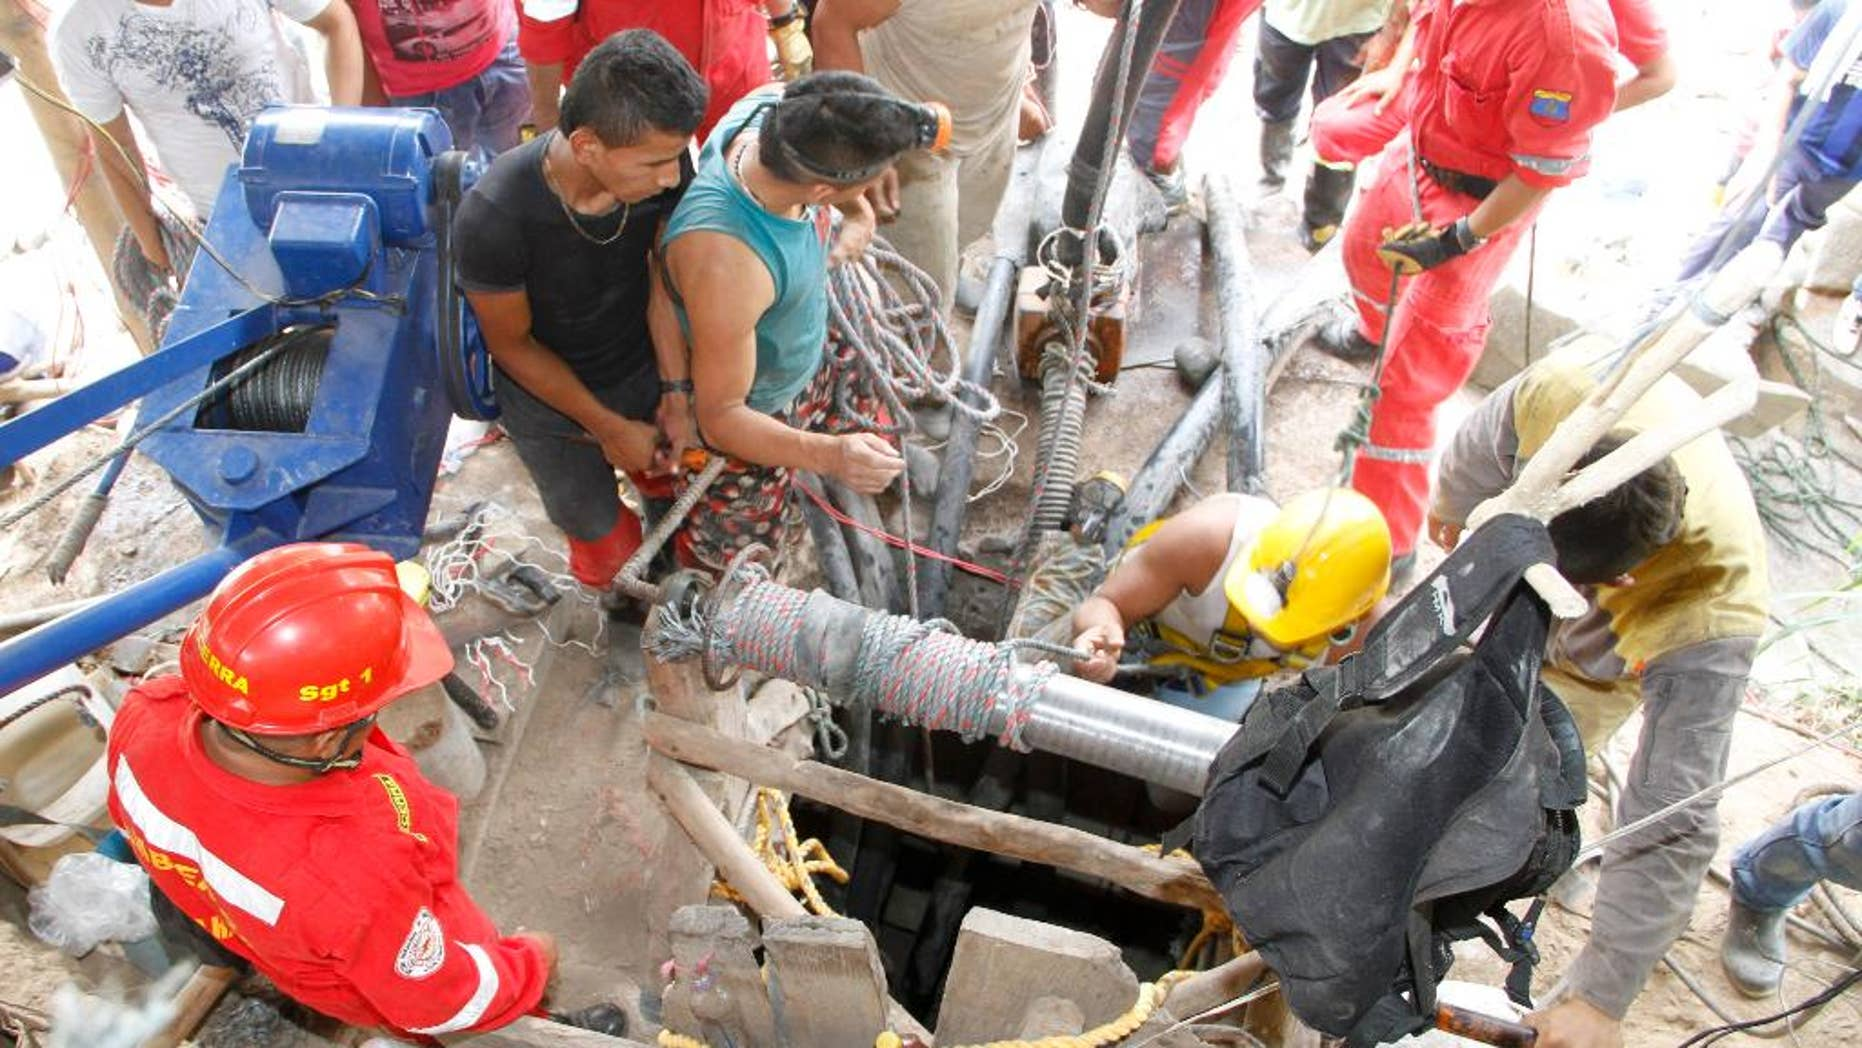 Miners and rescue workers work at the entrance to the El Tunel gold mine in Riosucio, Colombia, Wednesday, May 13, 2015. Fifteen miners are missing and feared dead after water poured into the underground shafts where they were digging early Wednesday. Authorities said the accident was likely triggered by an explosion or power outage that disabled pumps used to extract water and supply oxygen to work crews. (AP Photo/Juan Augusto Cardona)